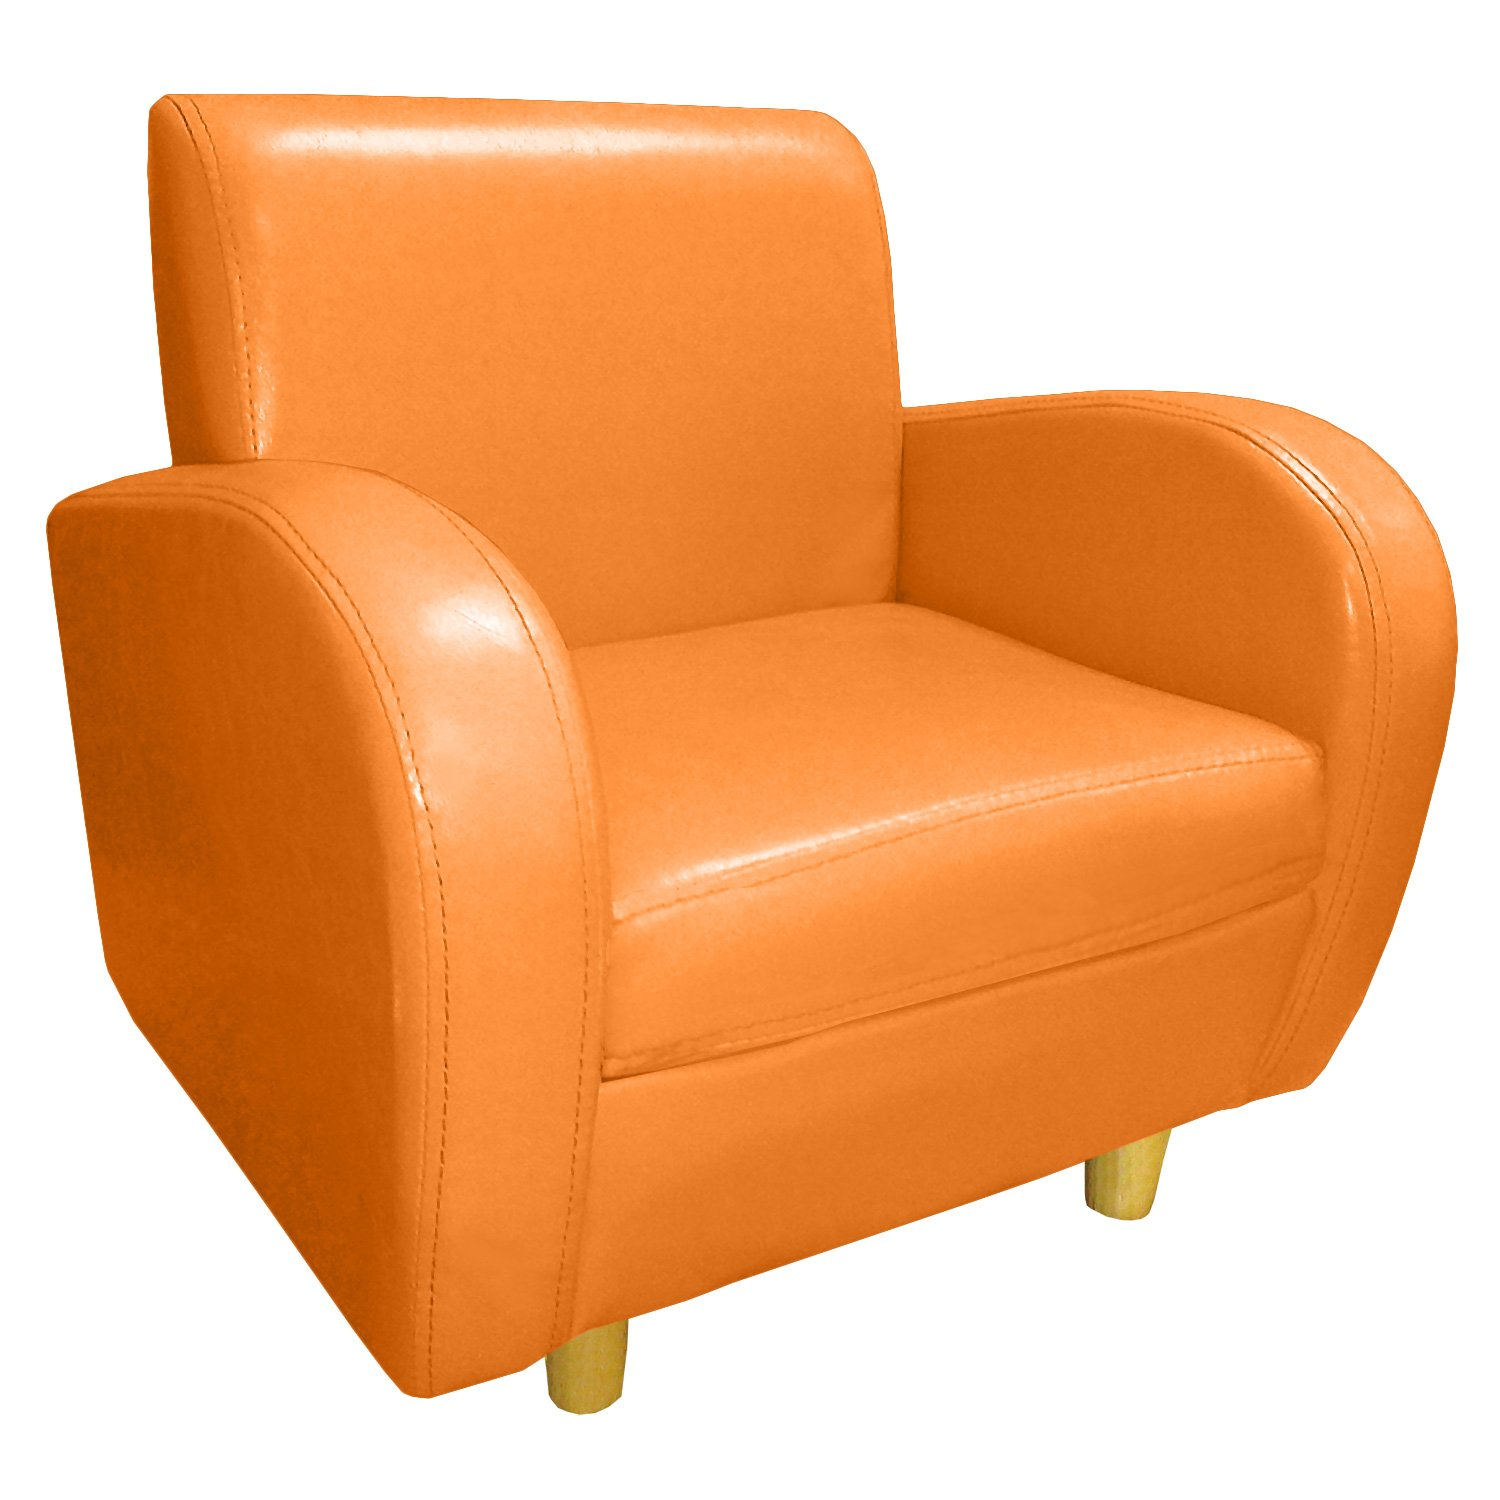 Cute pink armchair or orange tub chair for young children for Orange kids chair